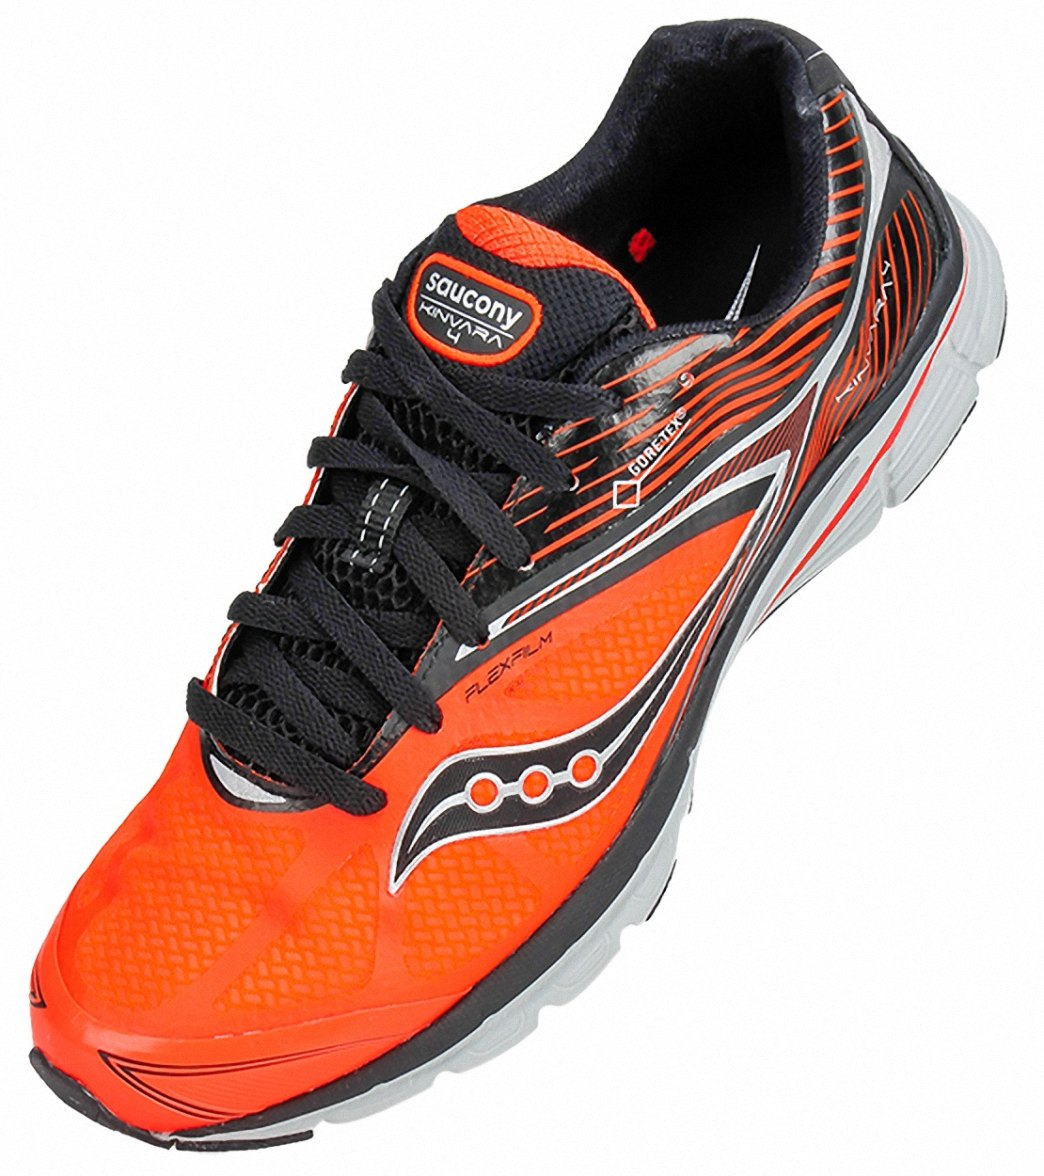 c1f7dfe29953 Saucony Men s Kinvara 4 GTX Running Shoes at SwimOutlet.com - Free Shipping